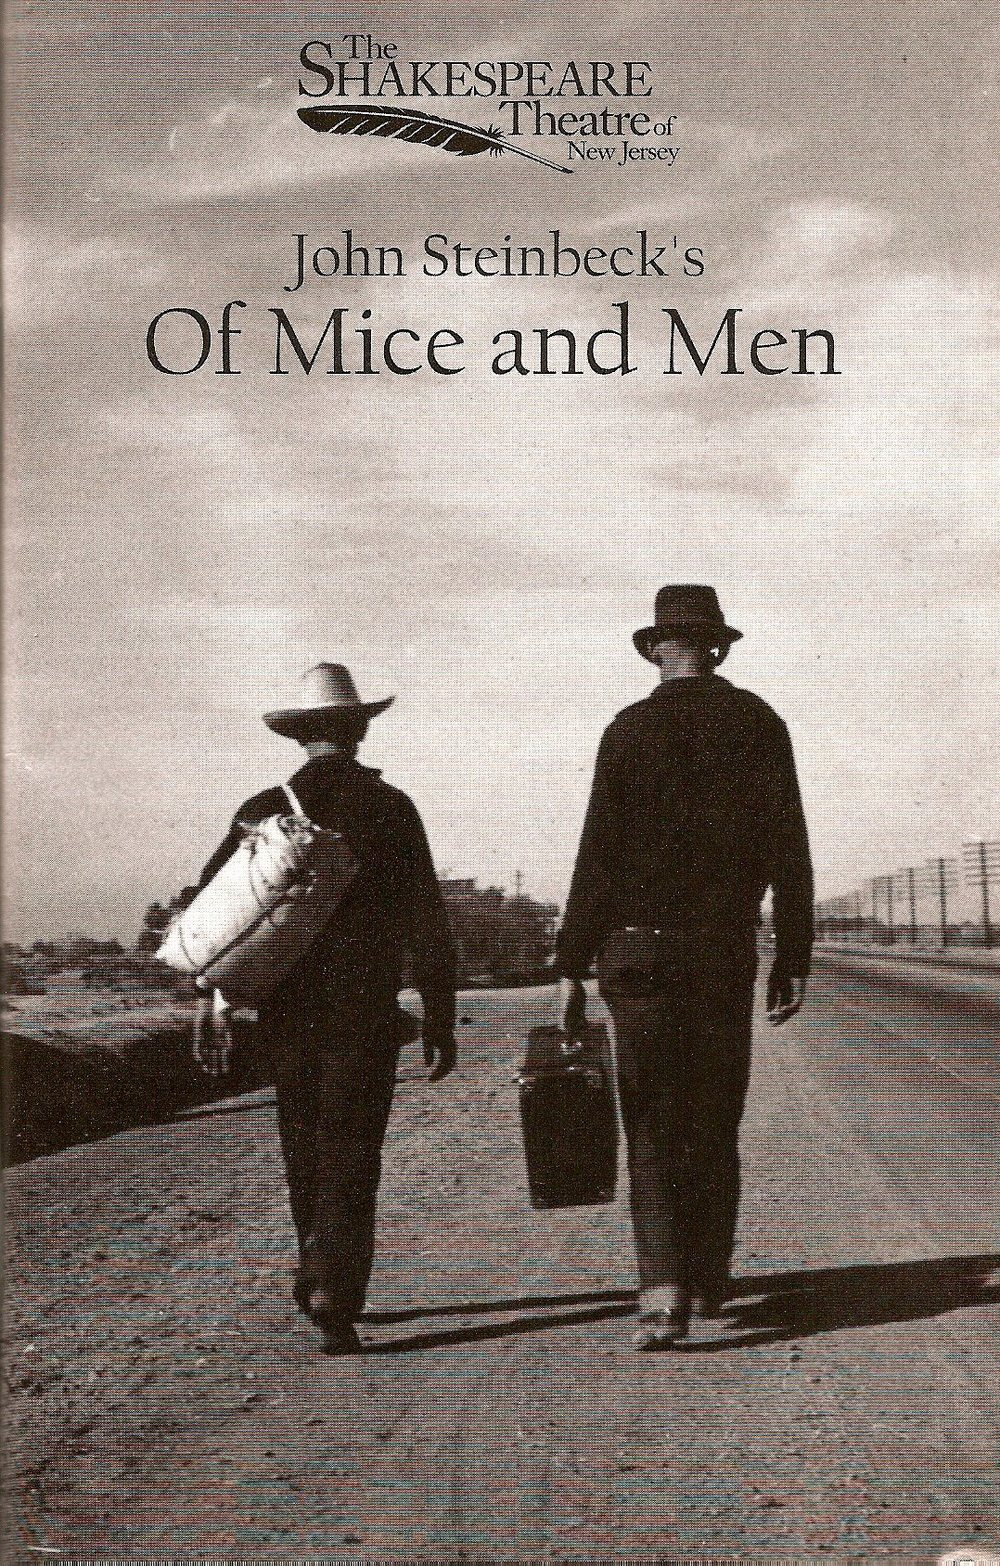 miceandmen_cover.jpg